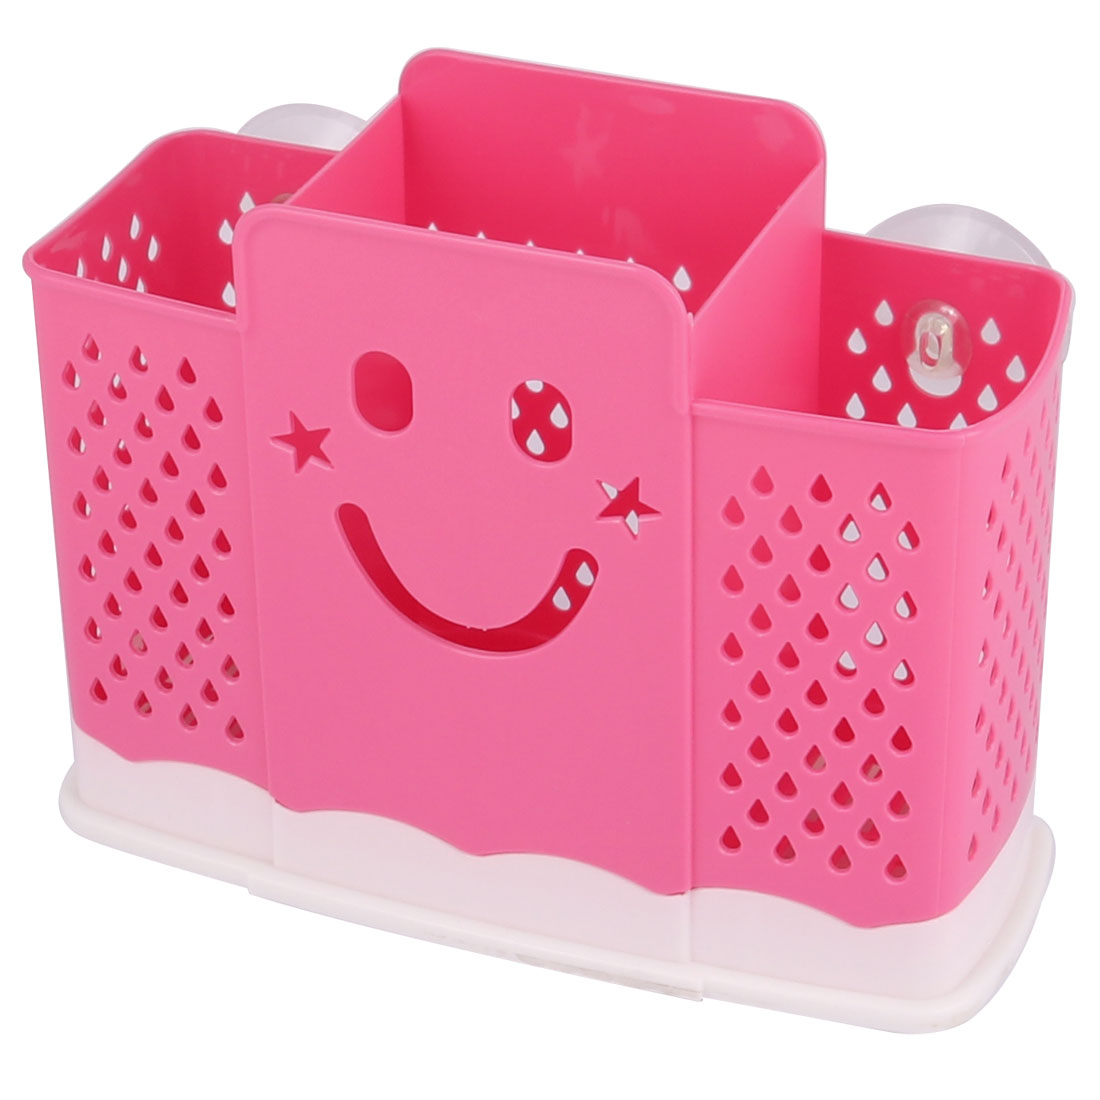 Kitchen Hollow Out Plastic 3 Compartments Wall-mounted Rice Scoop Spoon Chopsticks Holder Cage Basket Oraganizer Pink